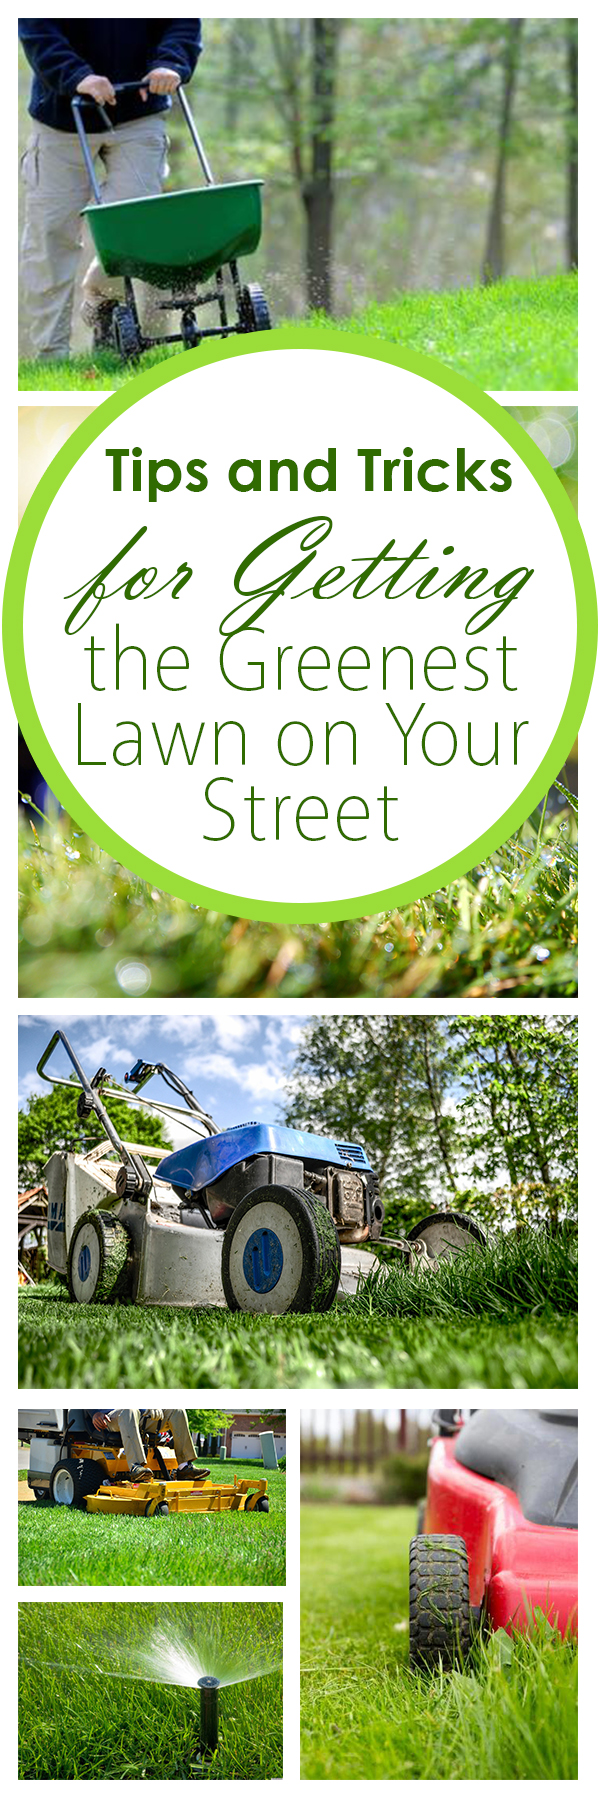 Tips and Tricks for Getting the Greenest Lawn on Your Street (1)